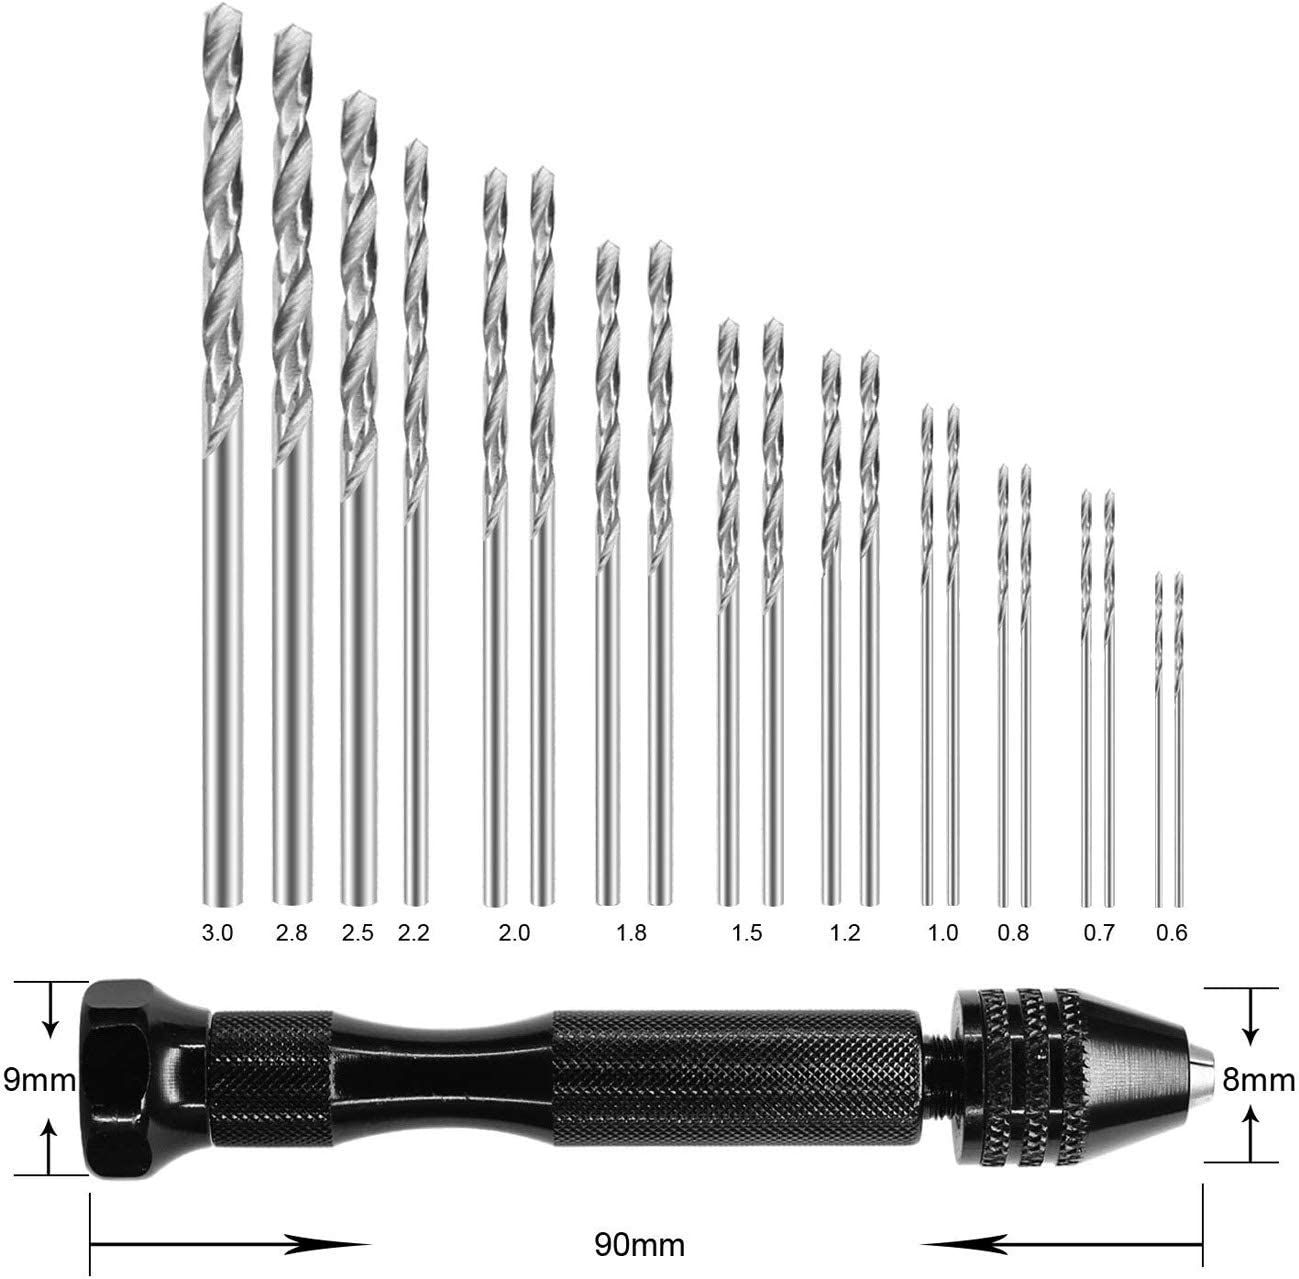 Micro Mini Twist Drill Bits Set with Precision Hand Pin Vise Rotary Tools for Wood Pin Vise Hand Drill Bits 20PCS Plastic etc Jewelry 0.6-3.0mm